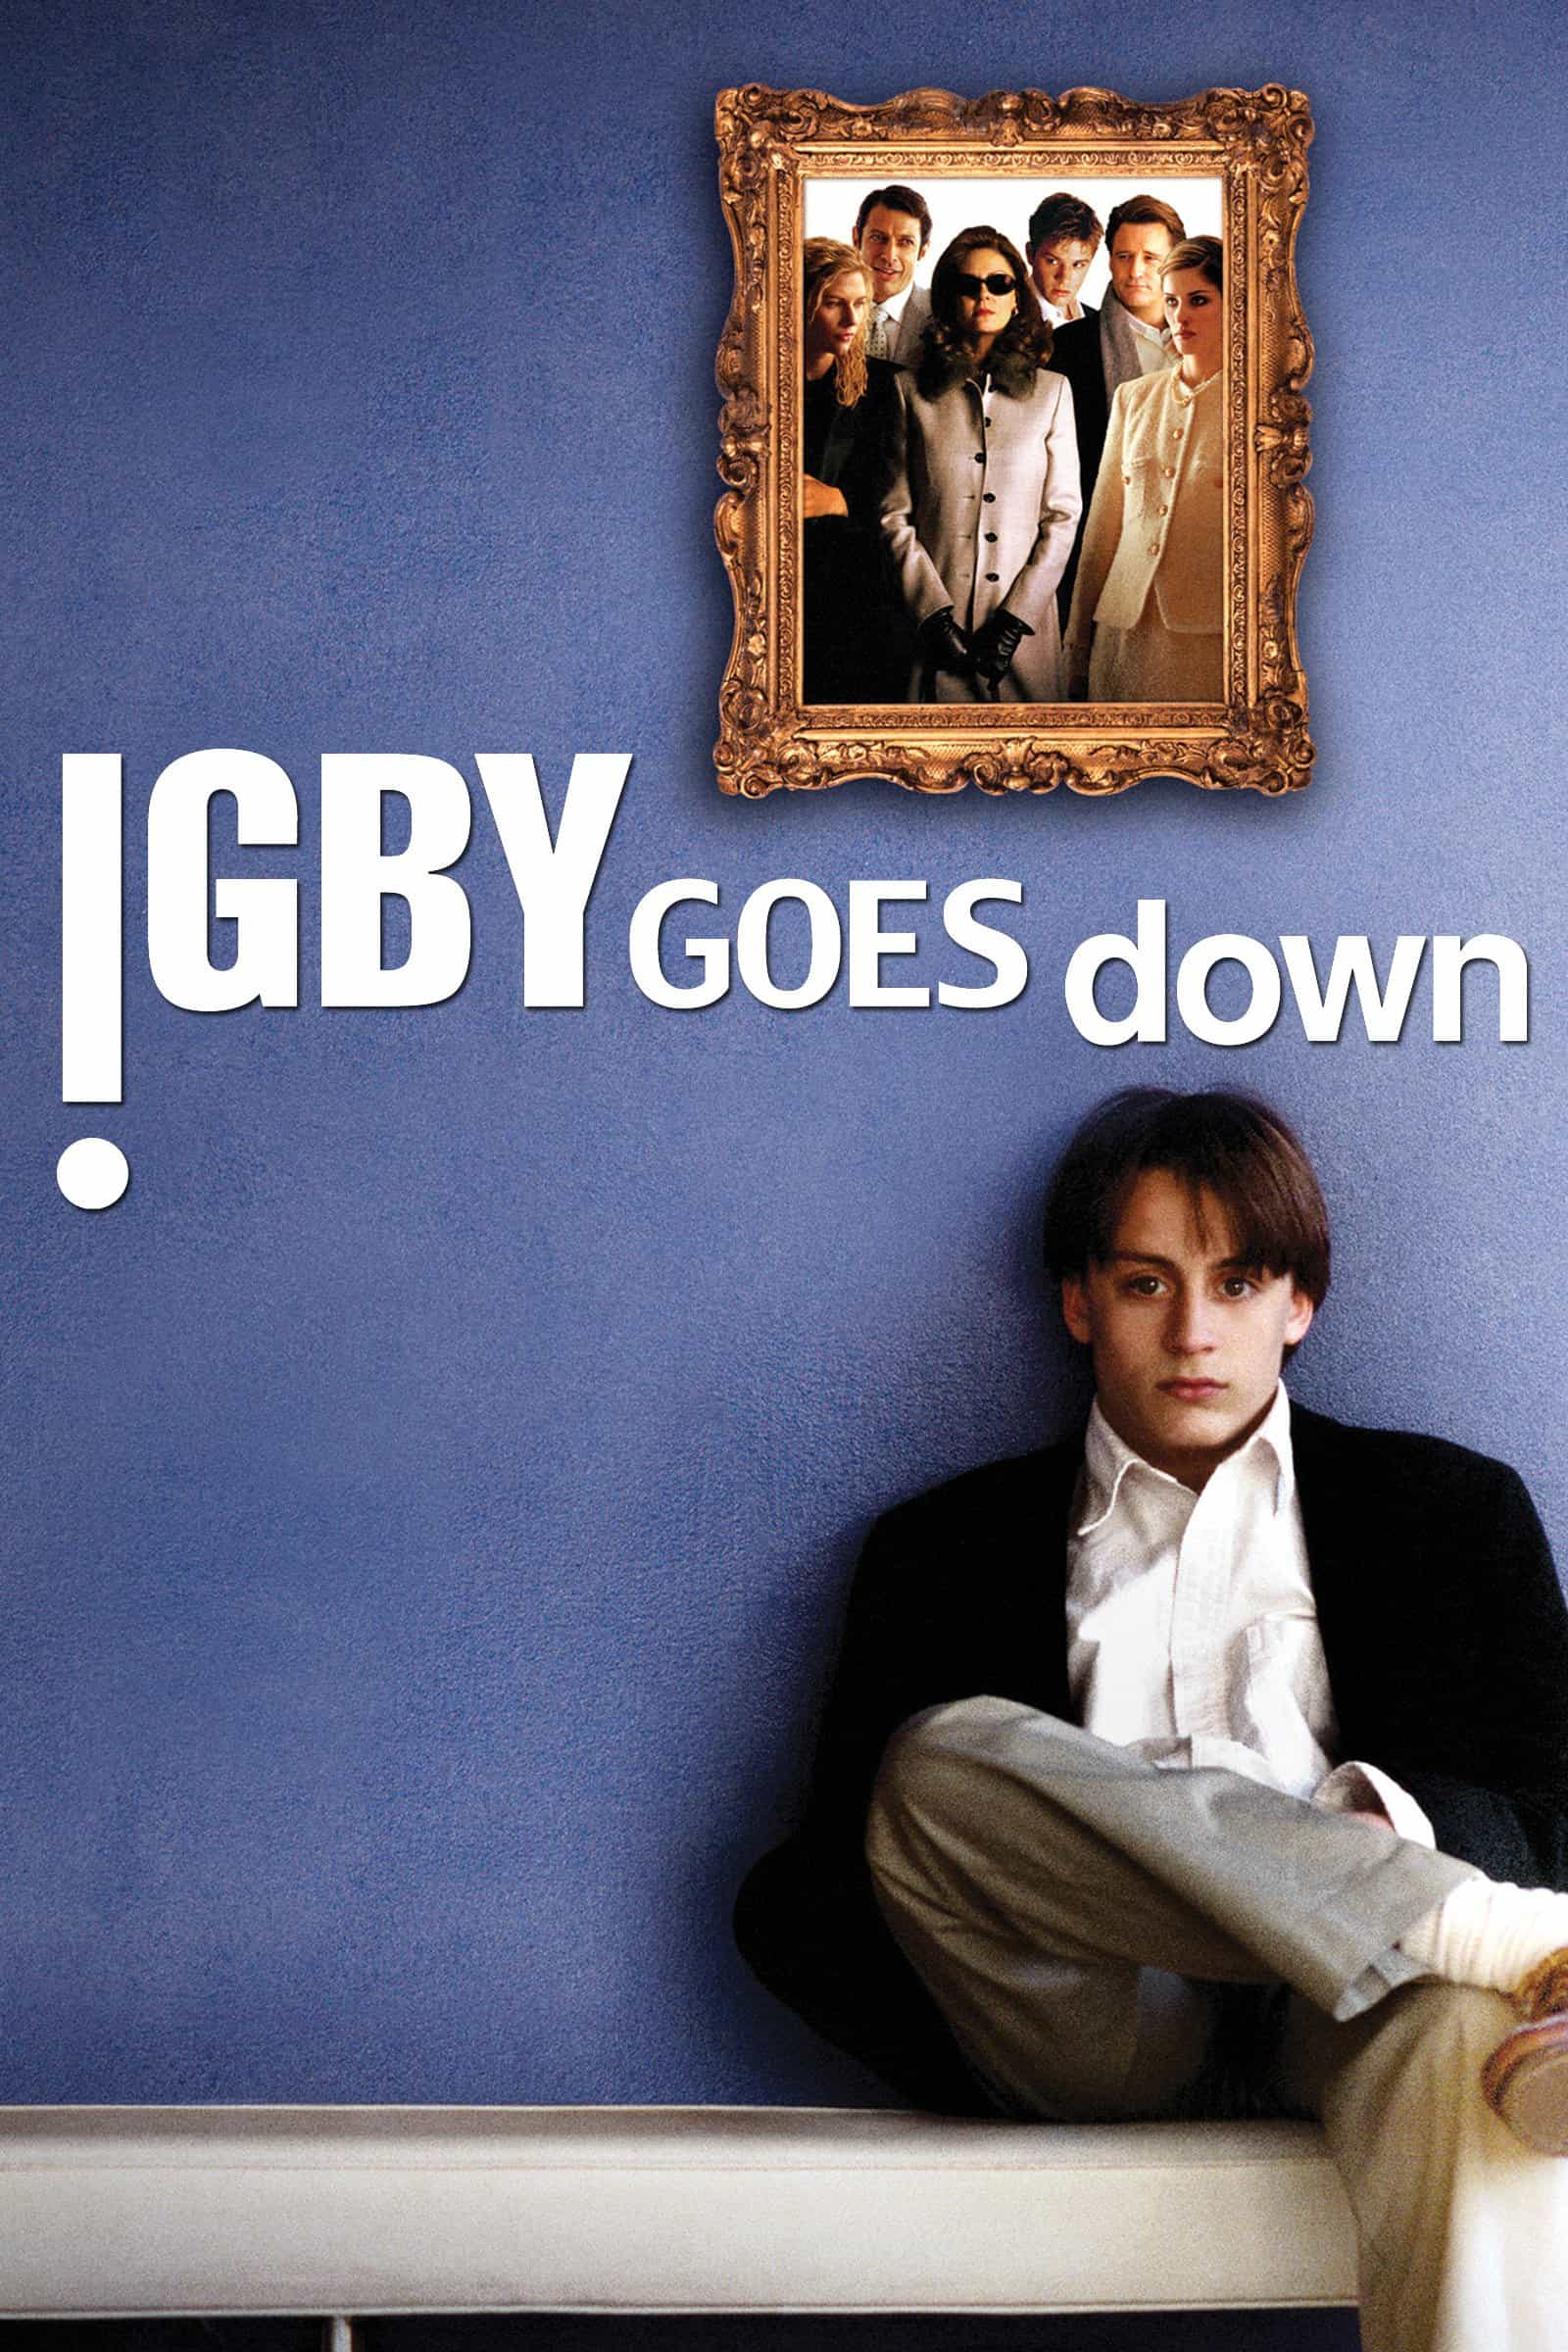 Igby Goes Down, 2002